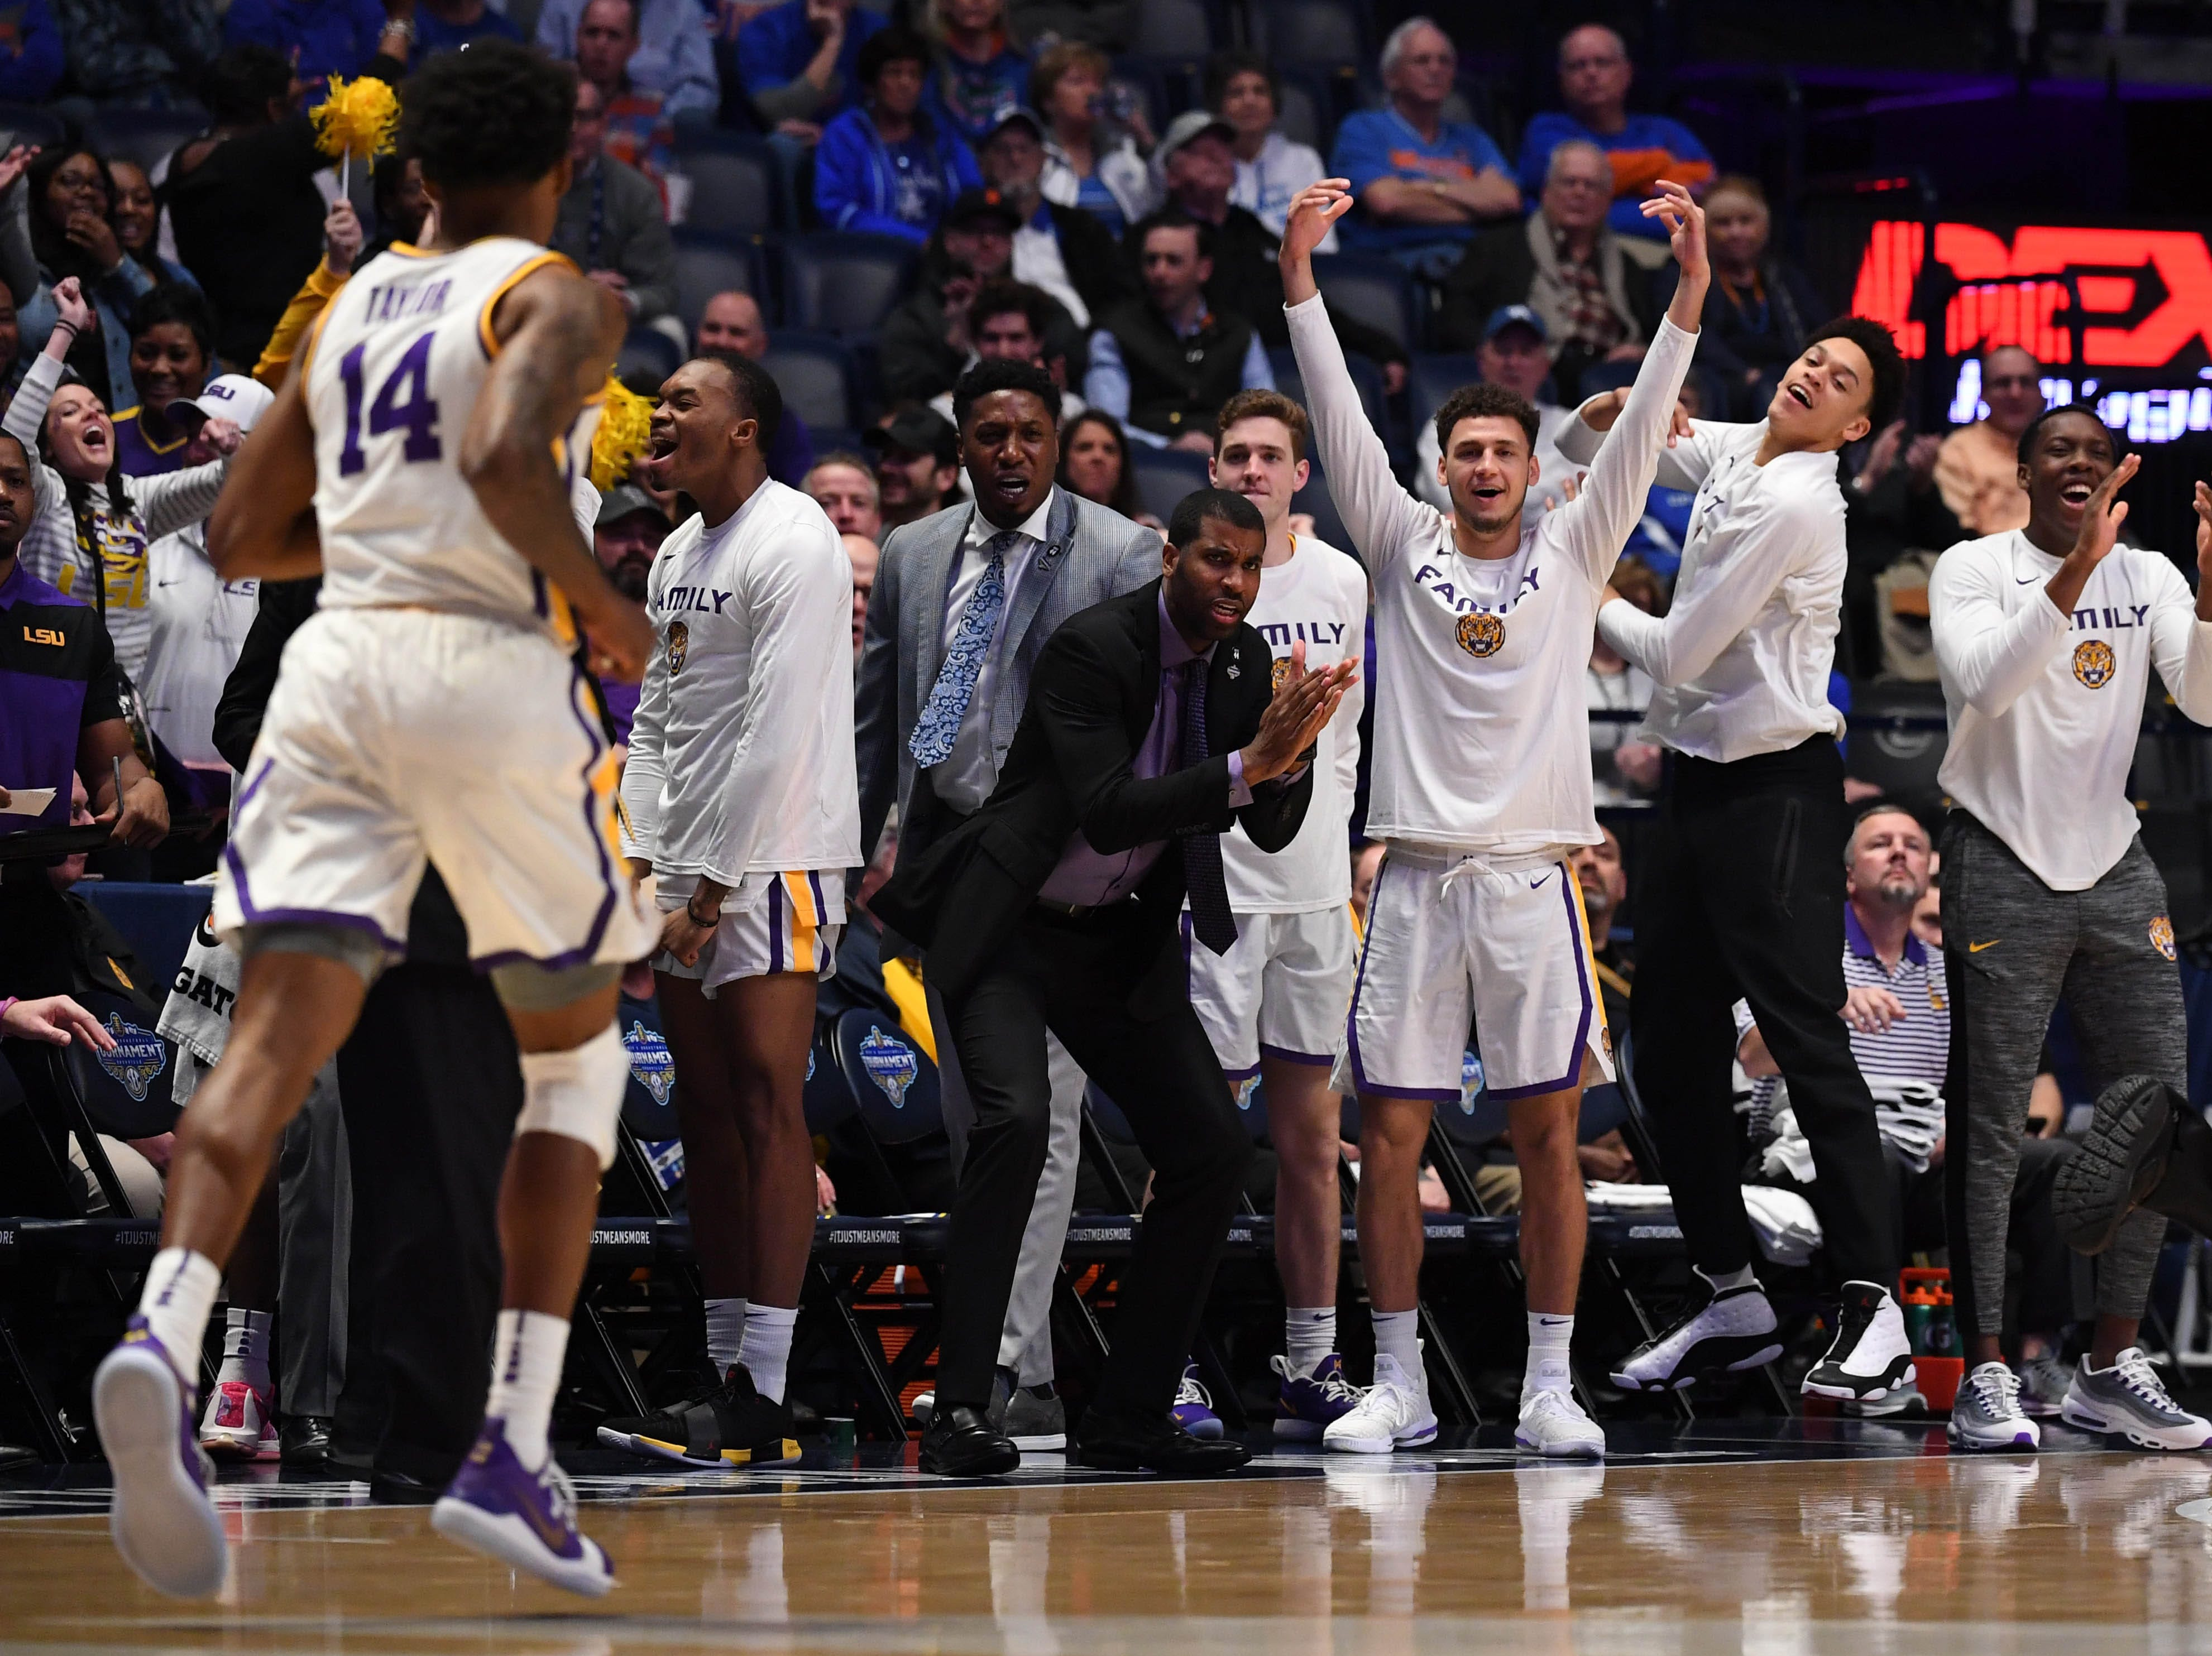 Mar 15, 2019; Nashville, TN, USA; The LSU Tigers players celebrate on the bench against the Florida Gators during the first half of the SEC conference tournament at Bridgestone Arena. Mandatory Credit: Christopher Hanewinckel-USA TODAY Sports